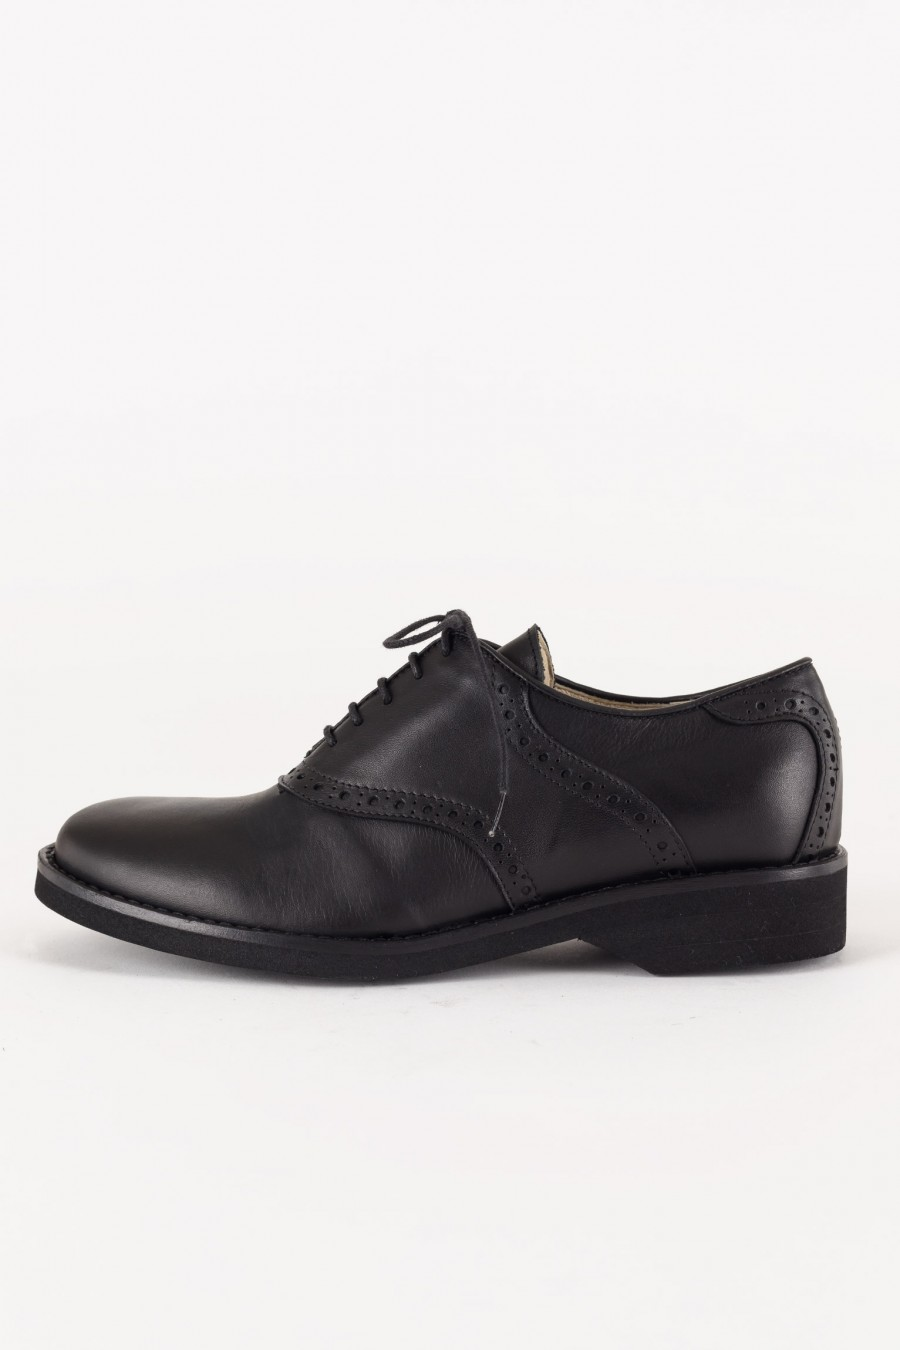 Black laced shoes